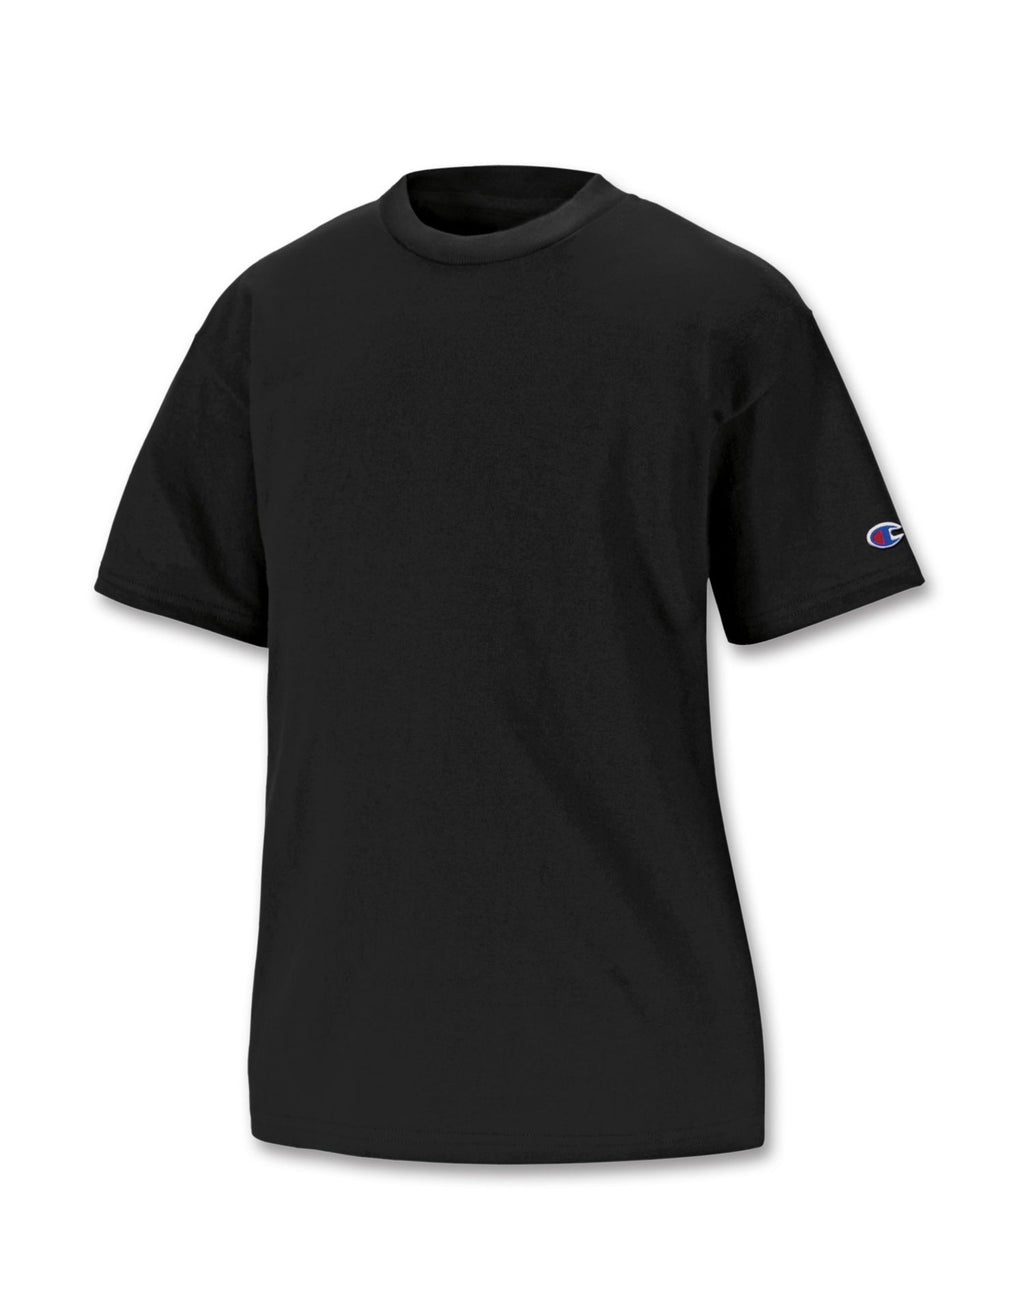 Champion Youth Short Sleeve Tee